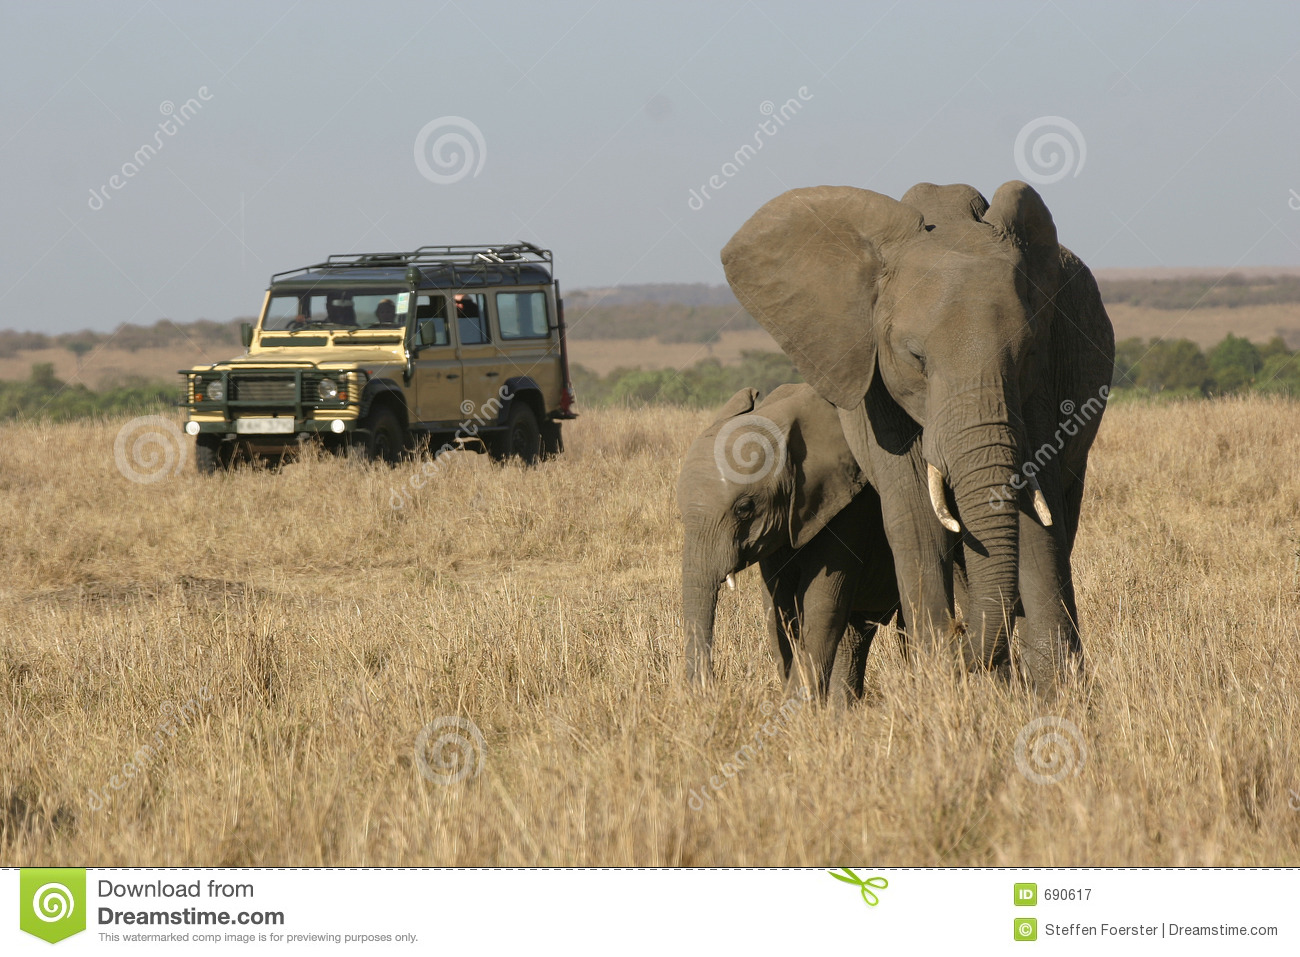 On Safari In Africa Royalty Free Stock Photography - Image: 690617